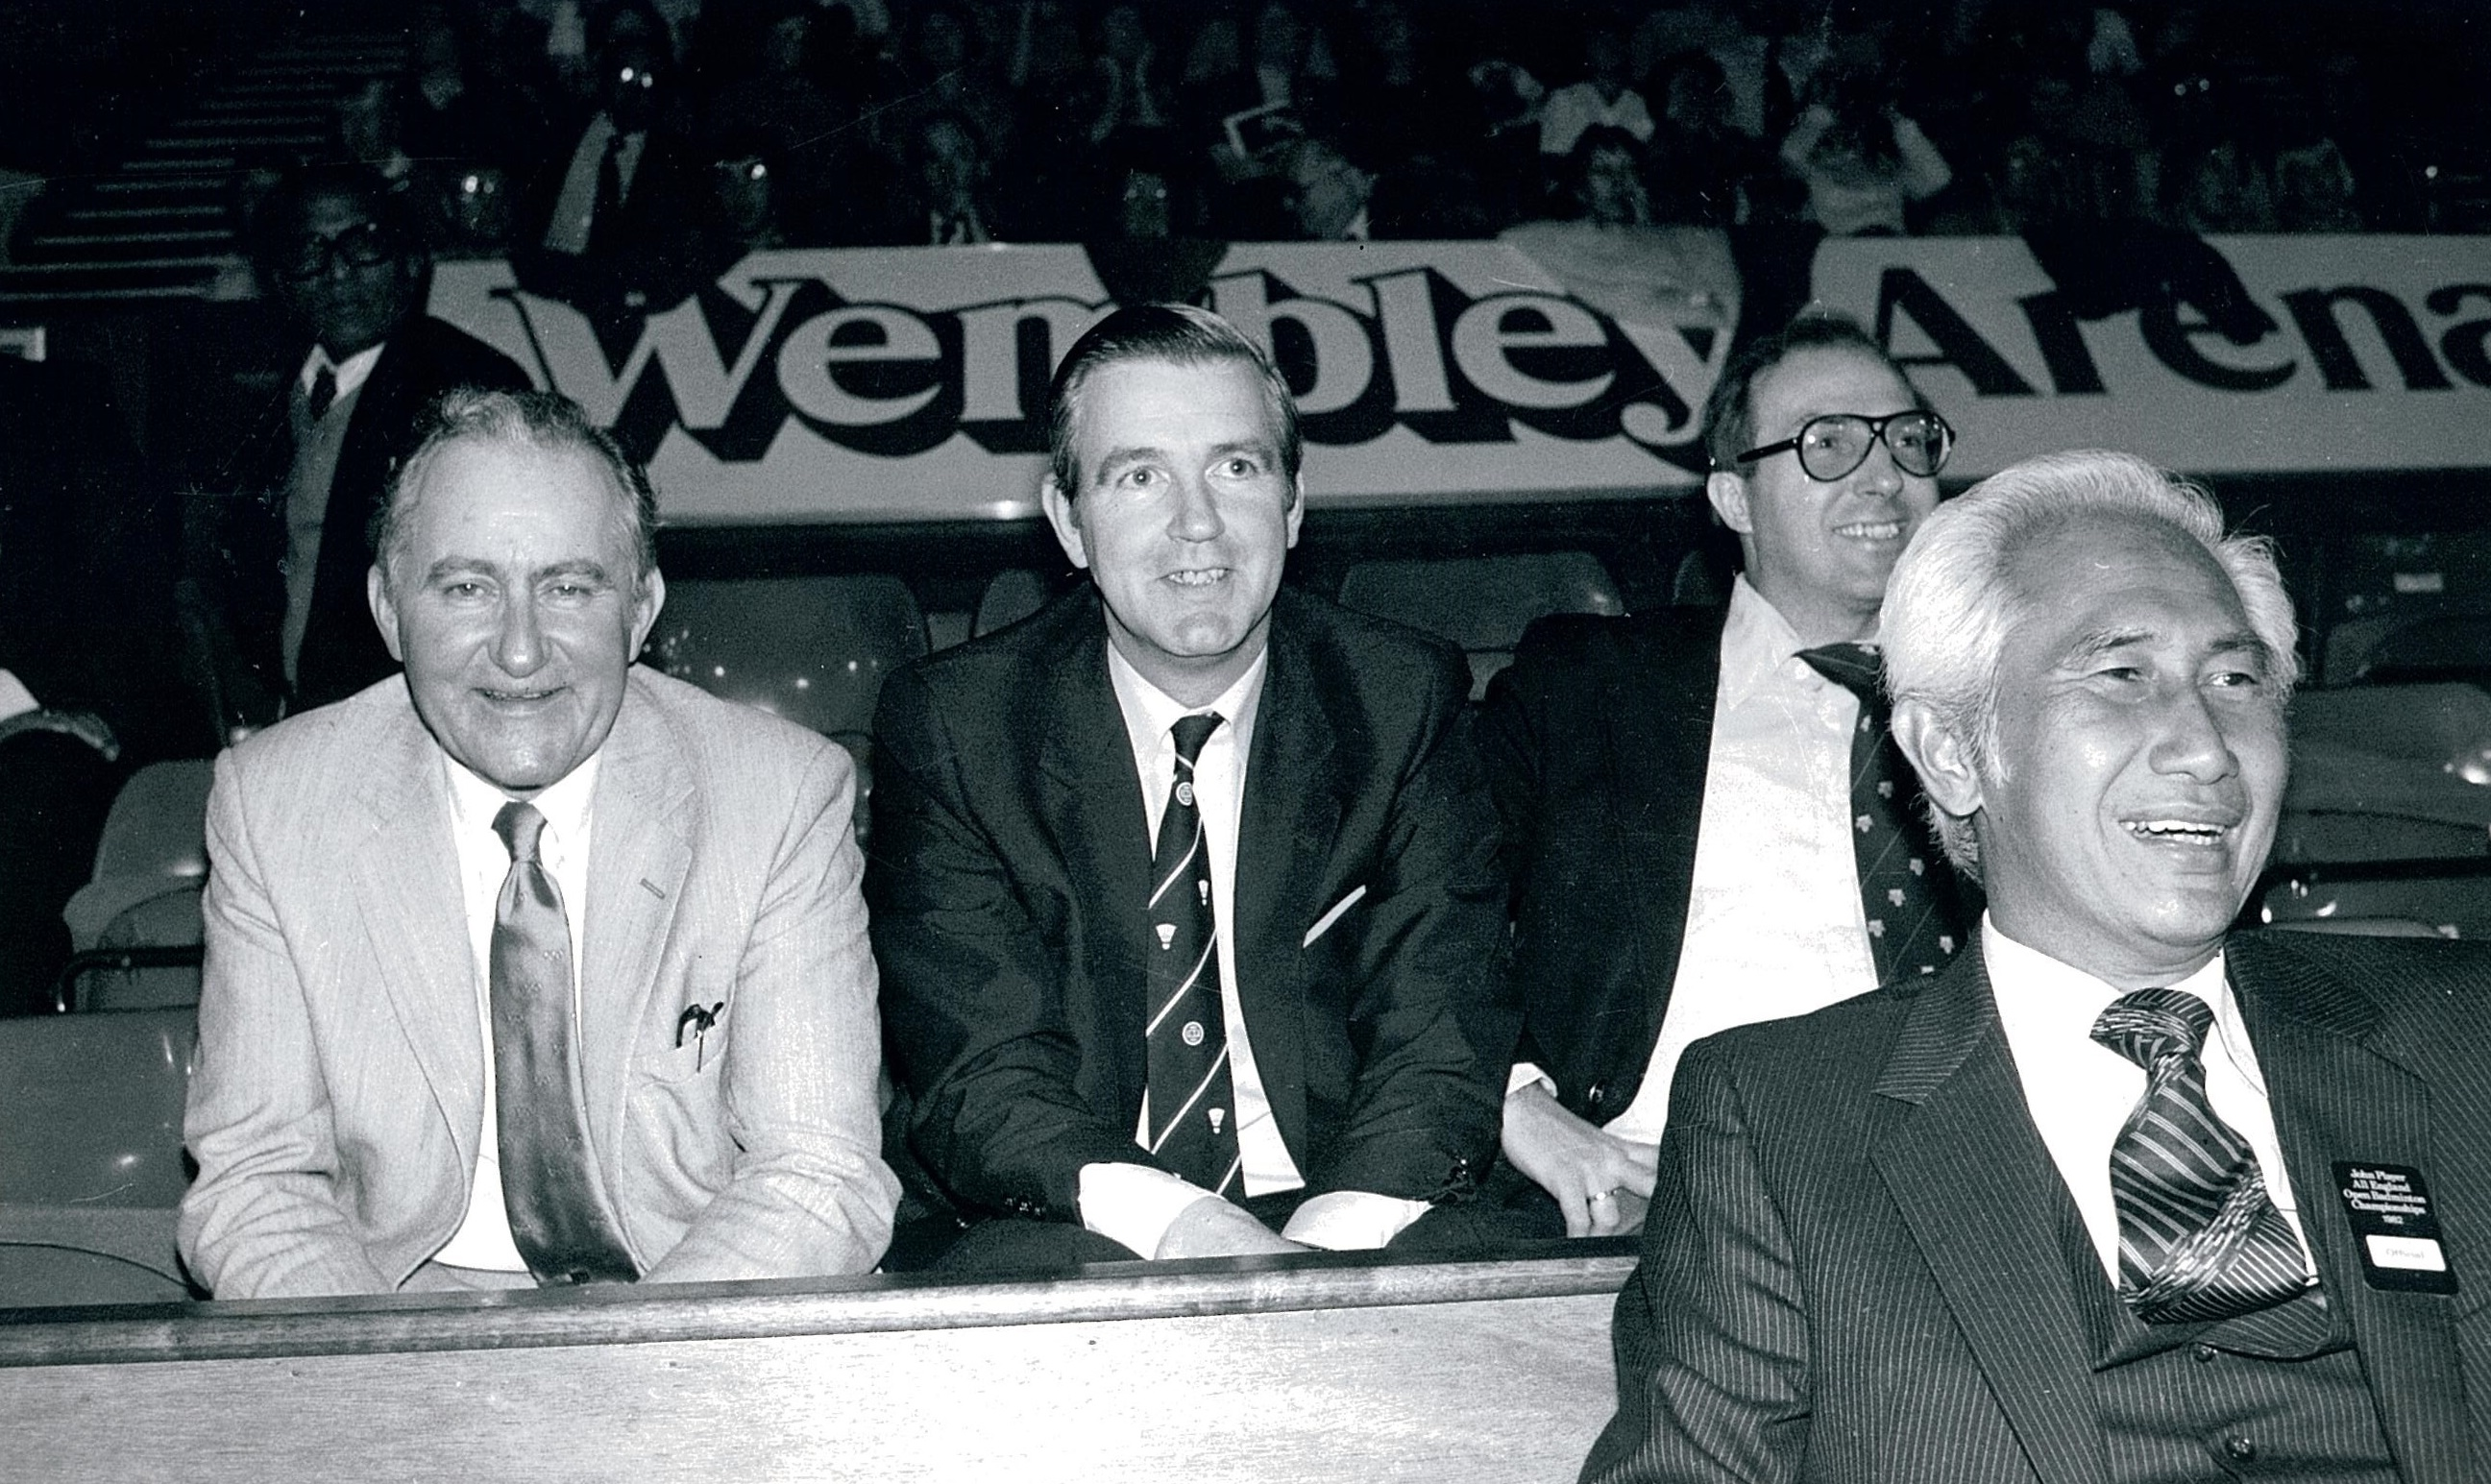 F sonneville ennjoying 1982 all england with s mohlin, c reedie, and pe nielsen at wembley arena